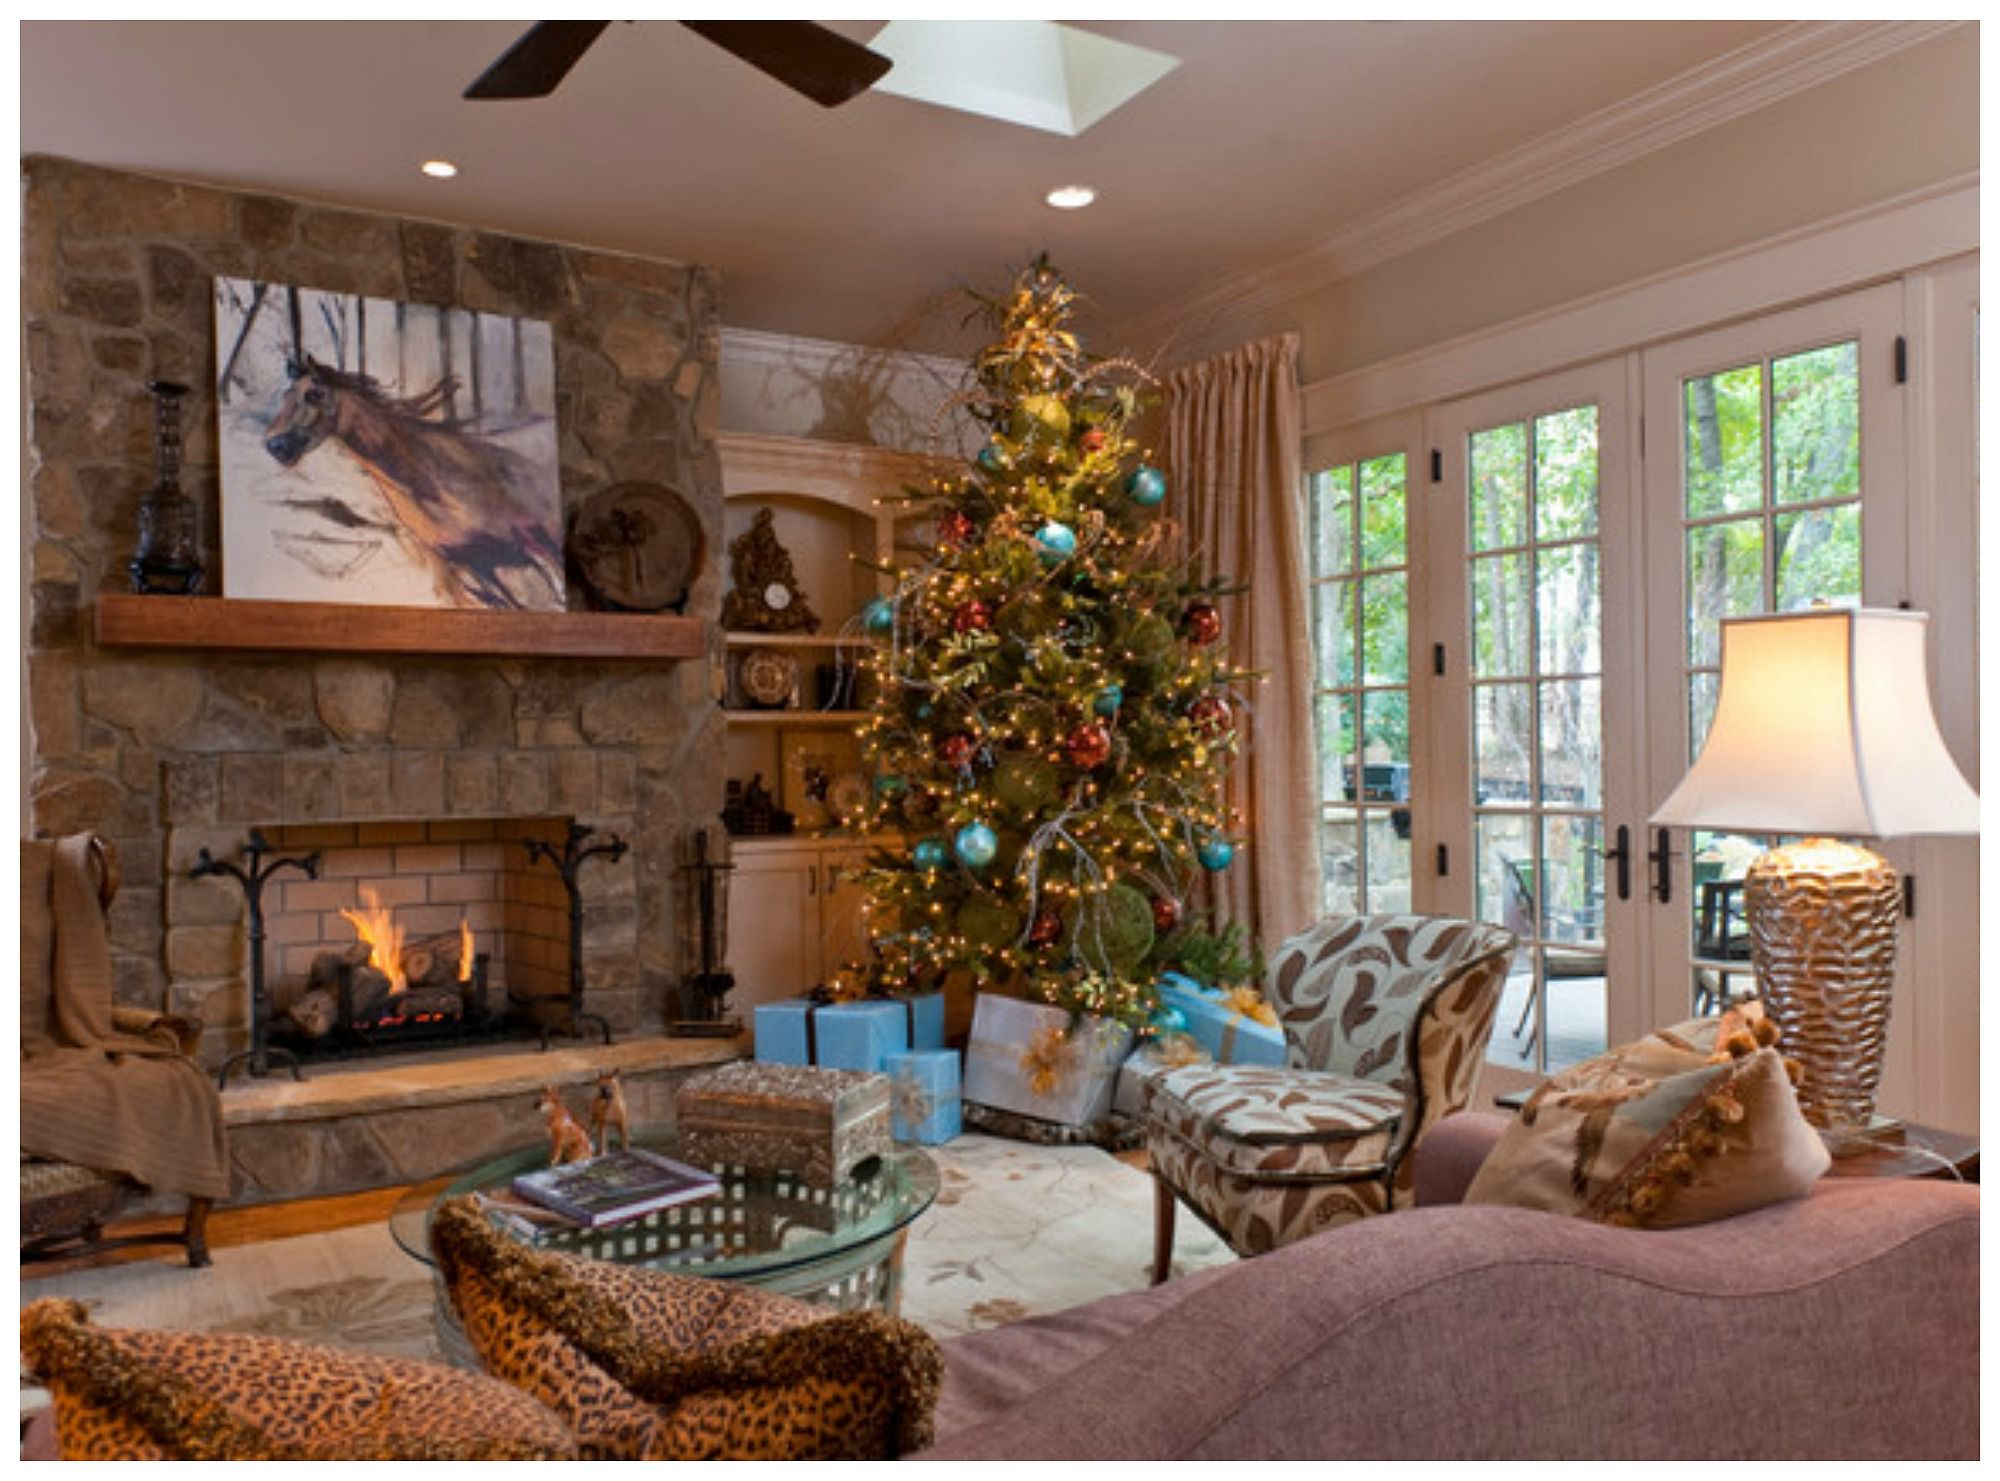 Christmas decorated rooms - Christmas Decorated Rooms 33